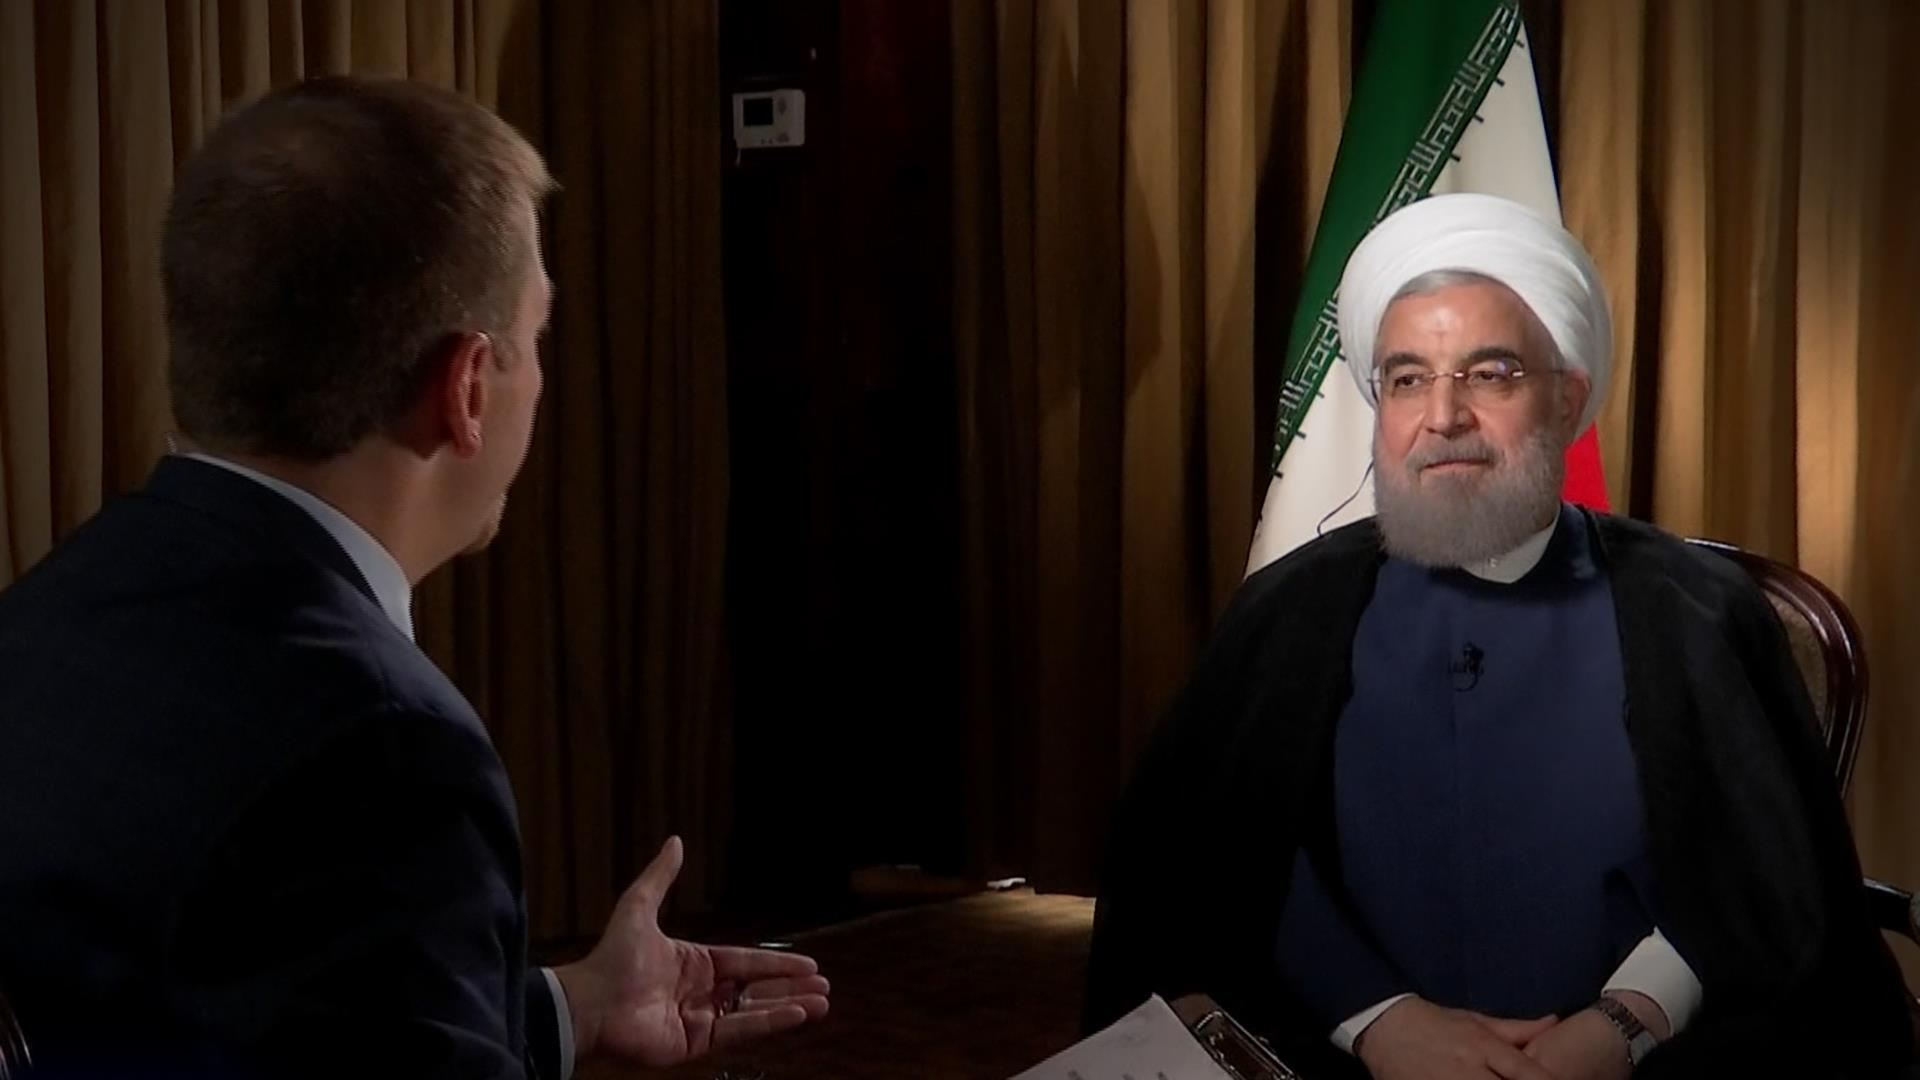 Full Interview: Chuck Todd's Exclusive With Iranian President Rouhani